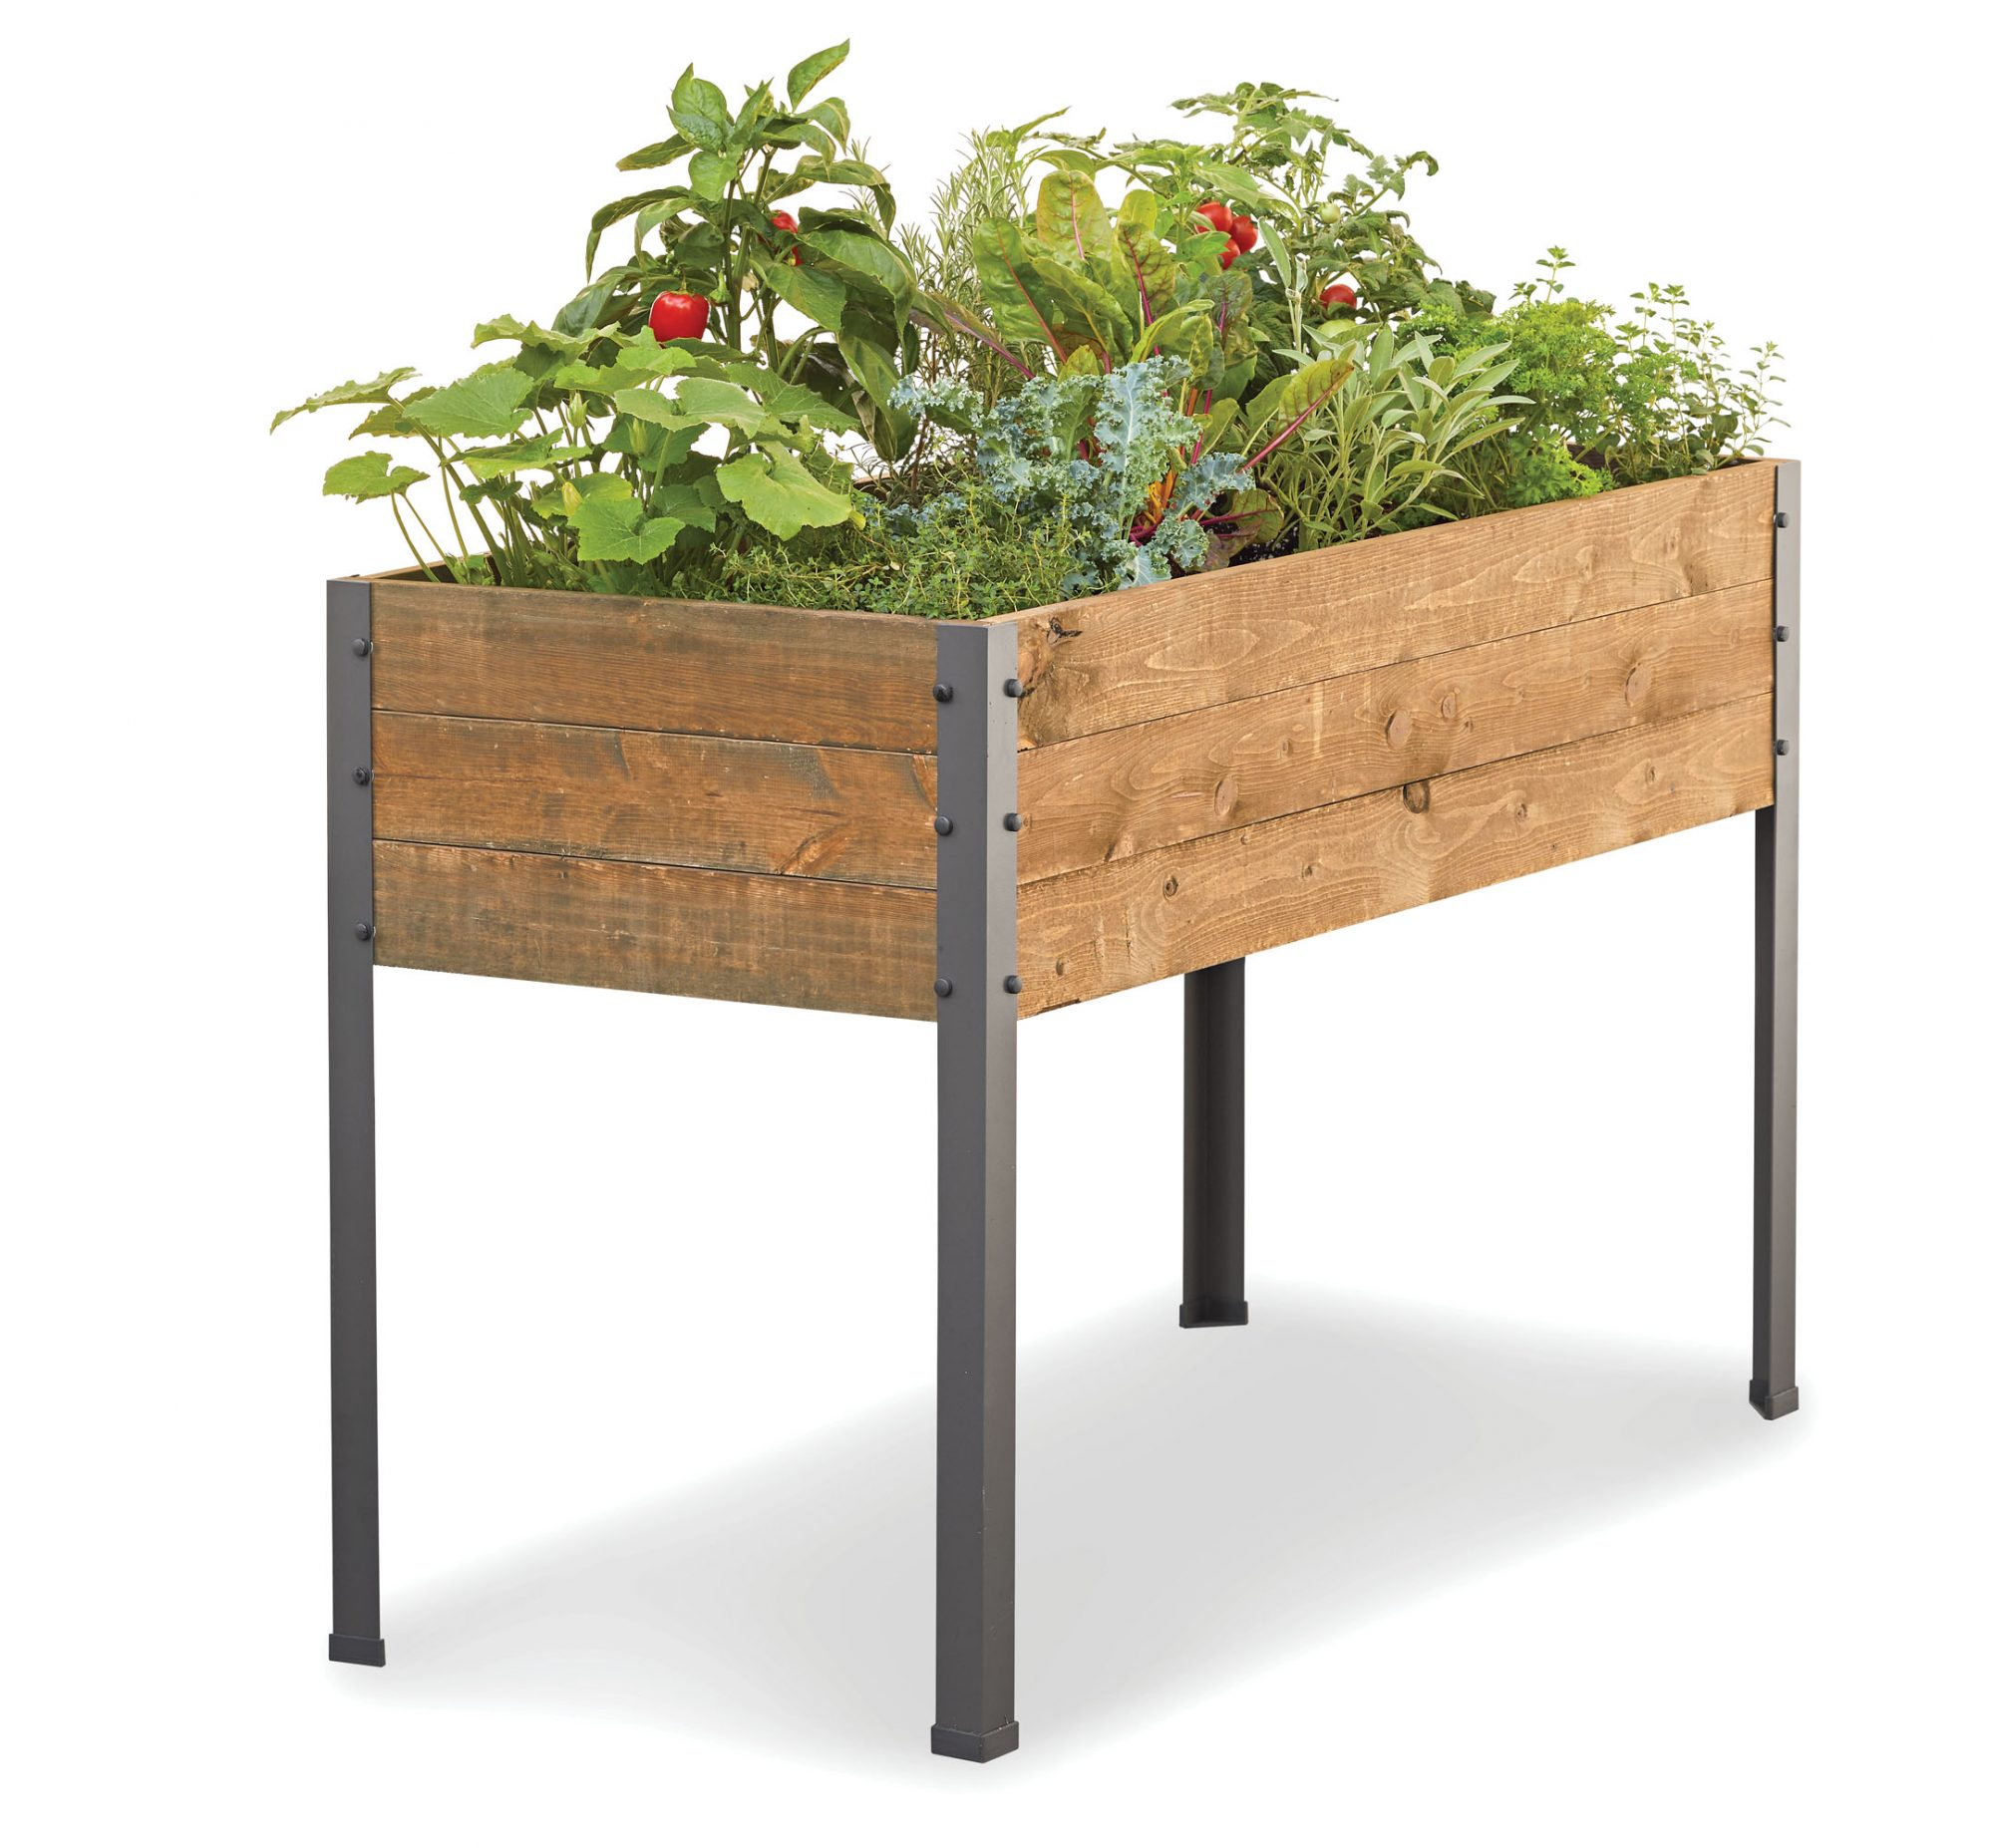 Better Homes & Gardens Elevated Planter